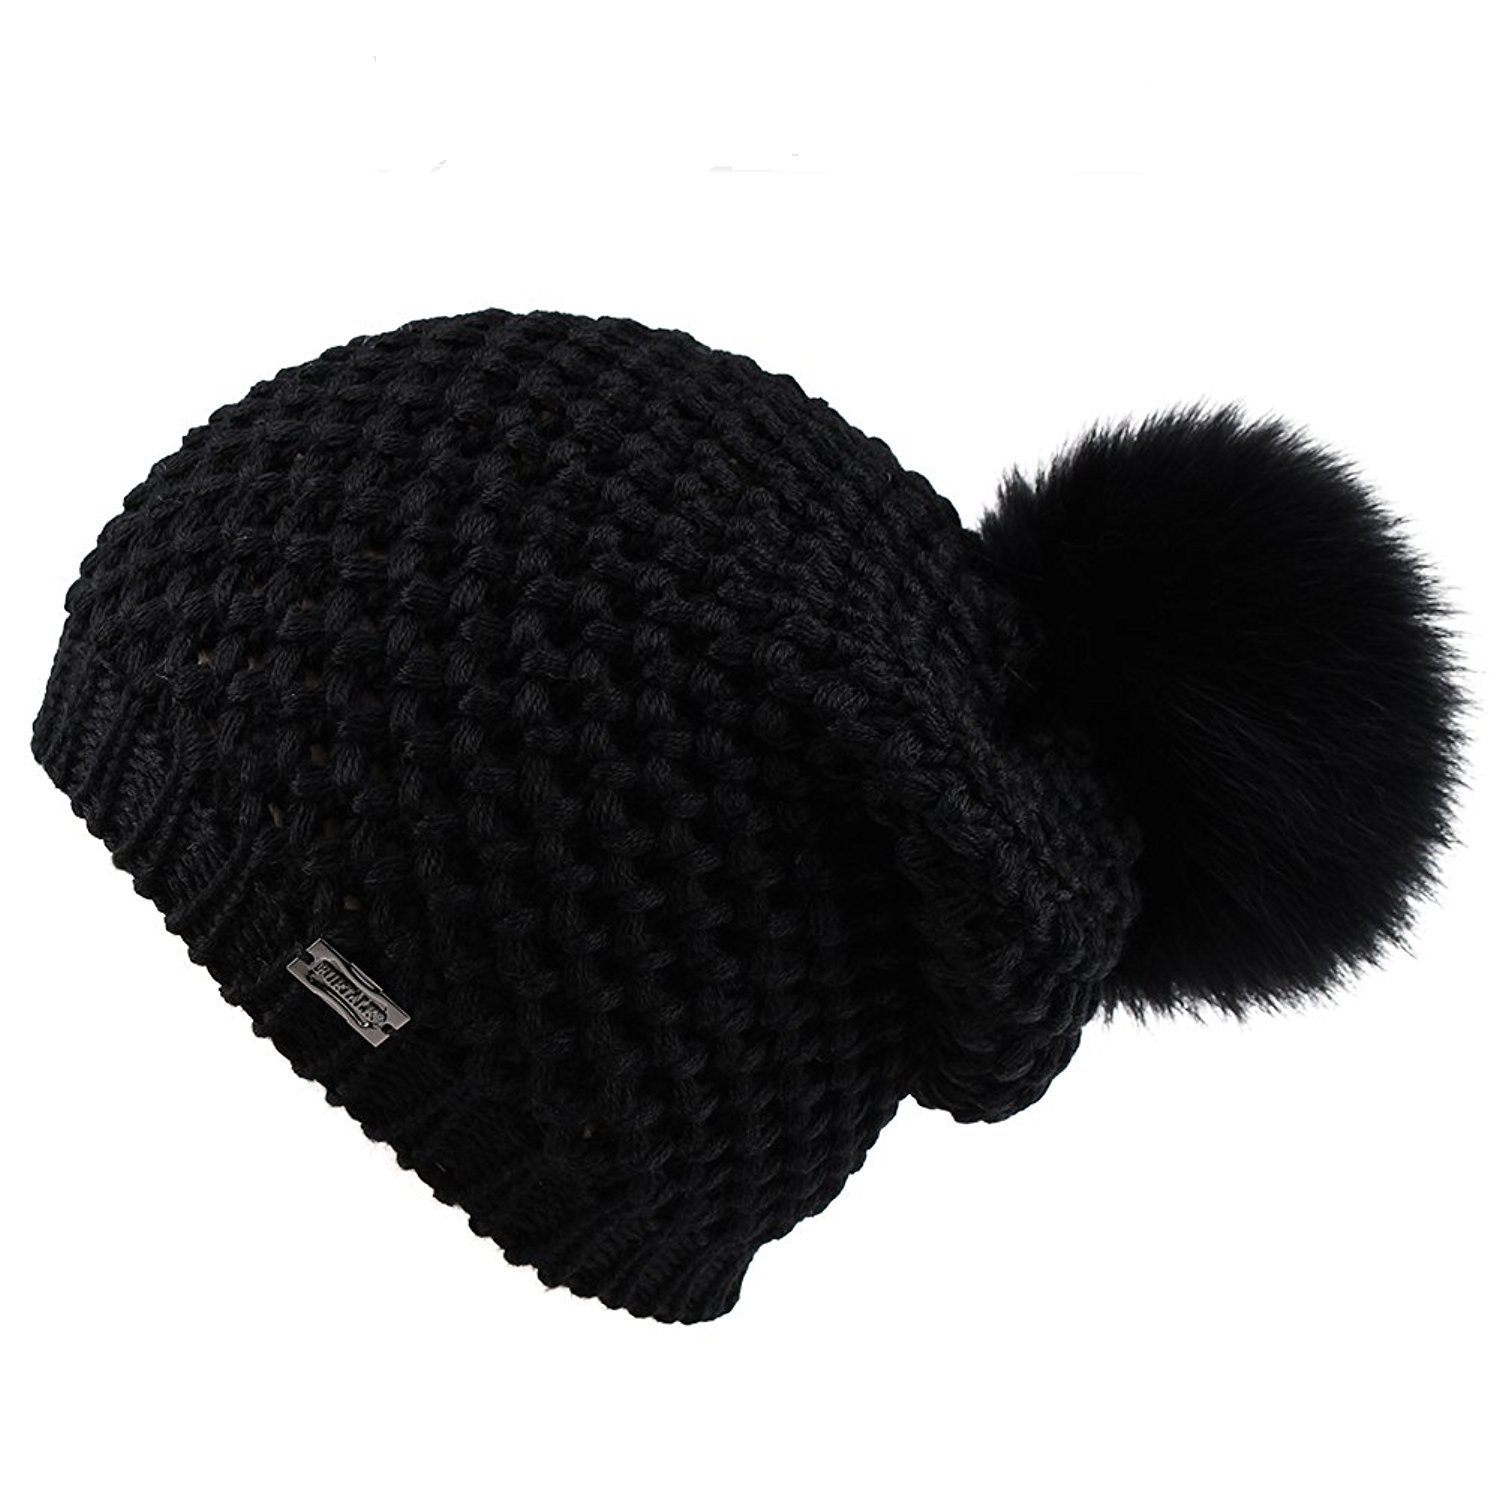 154ab3e4f83380 Get Quotations · FURTALK Winter Knit Pom Pom Hat - Merino Wool Beanie With  Detachable Real Fox Fur Ball